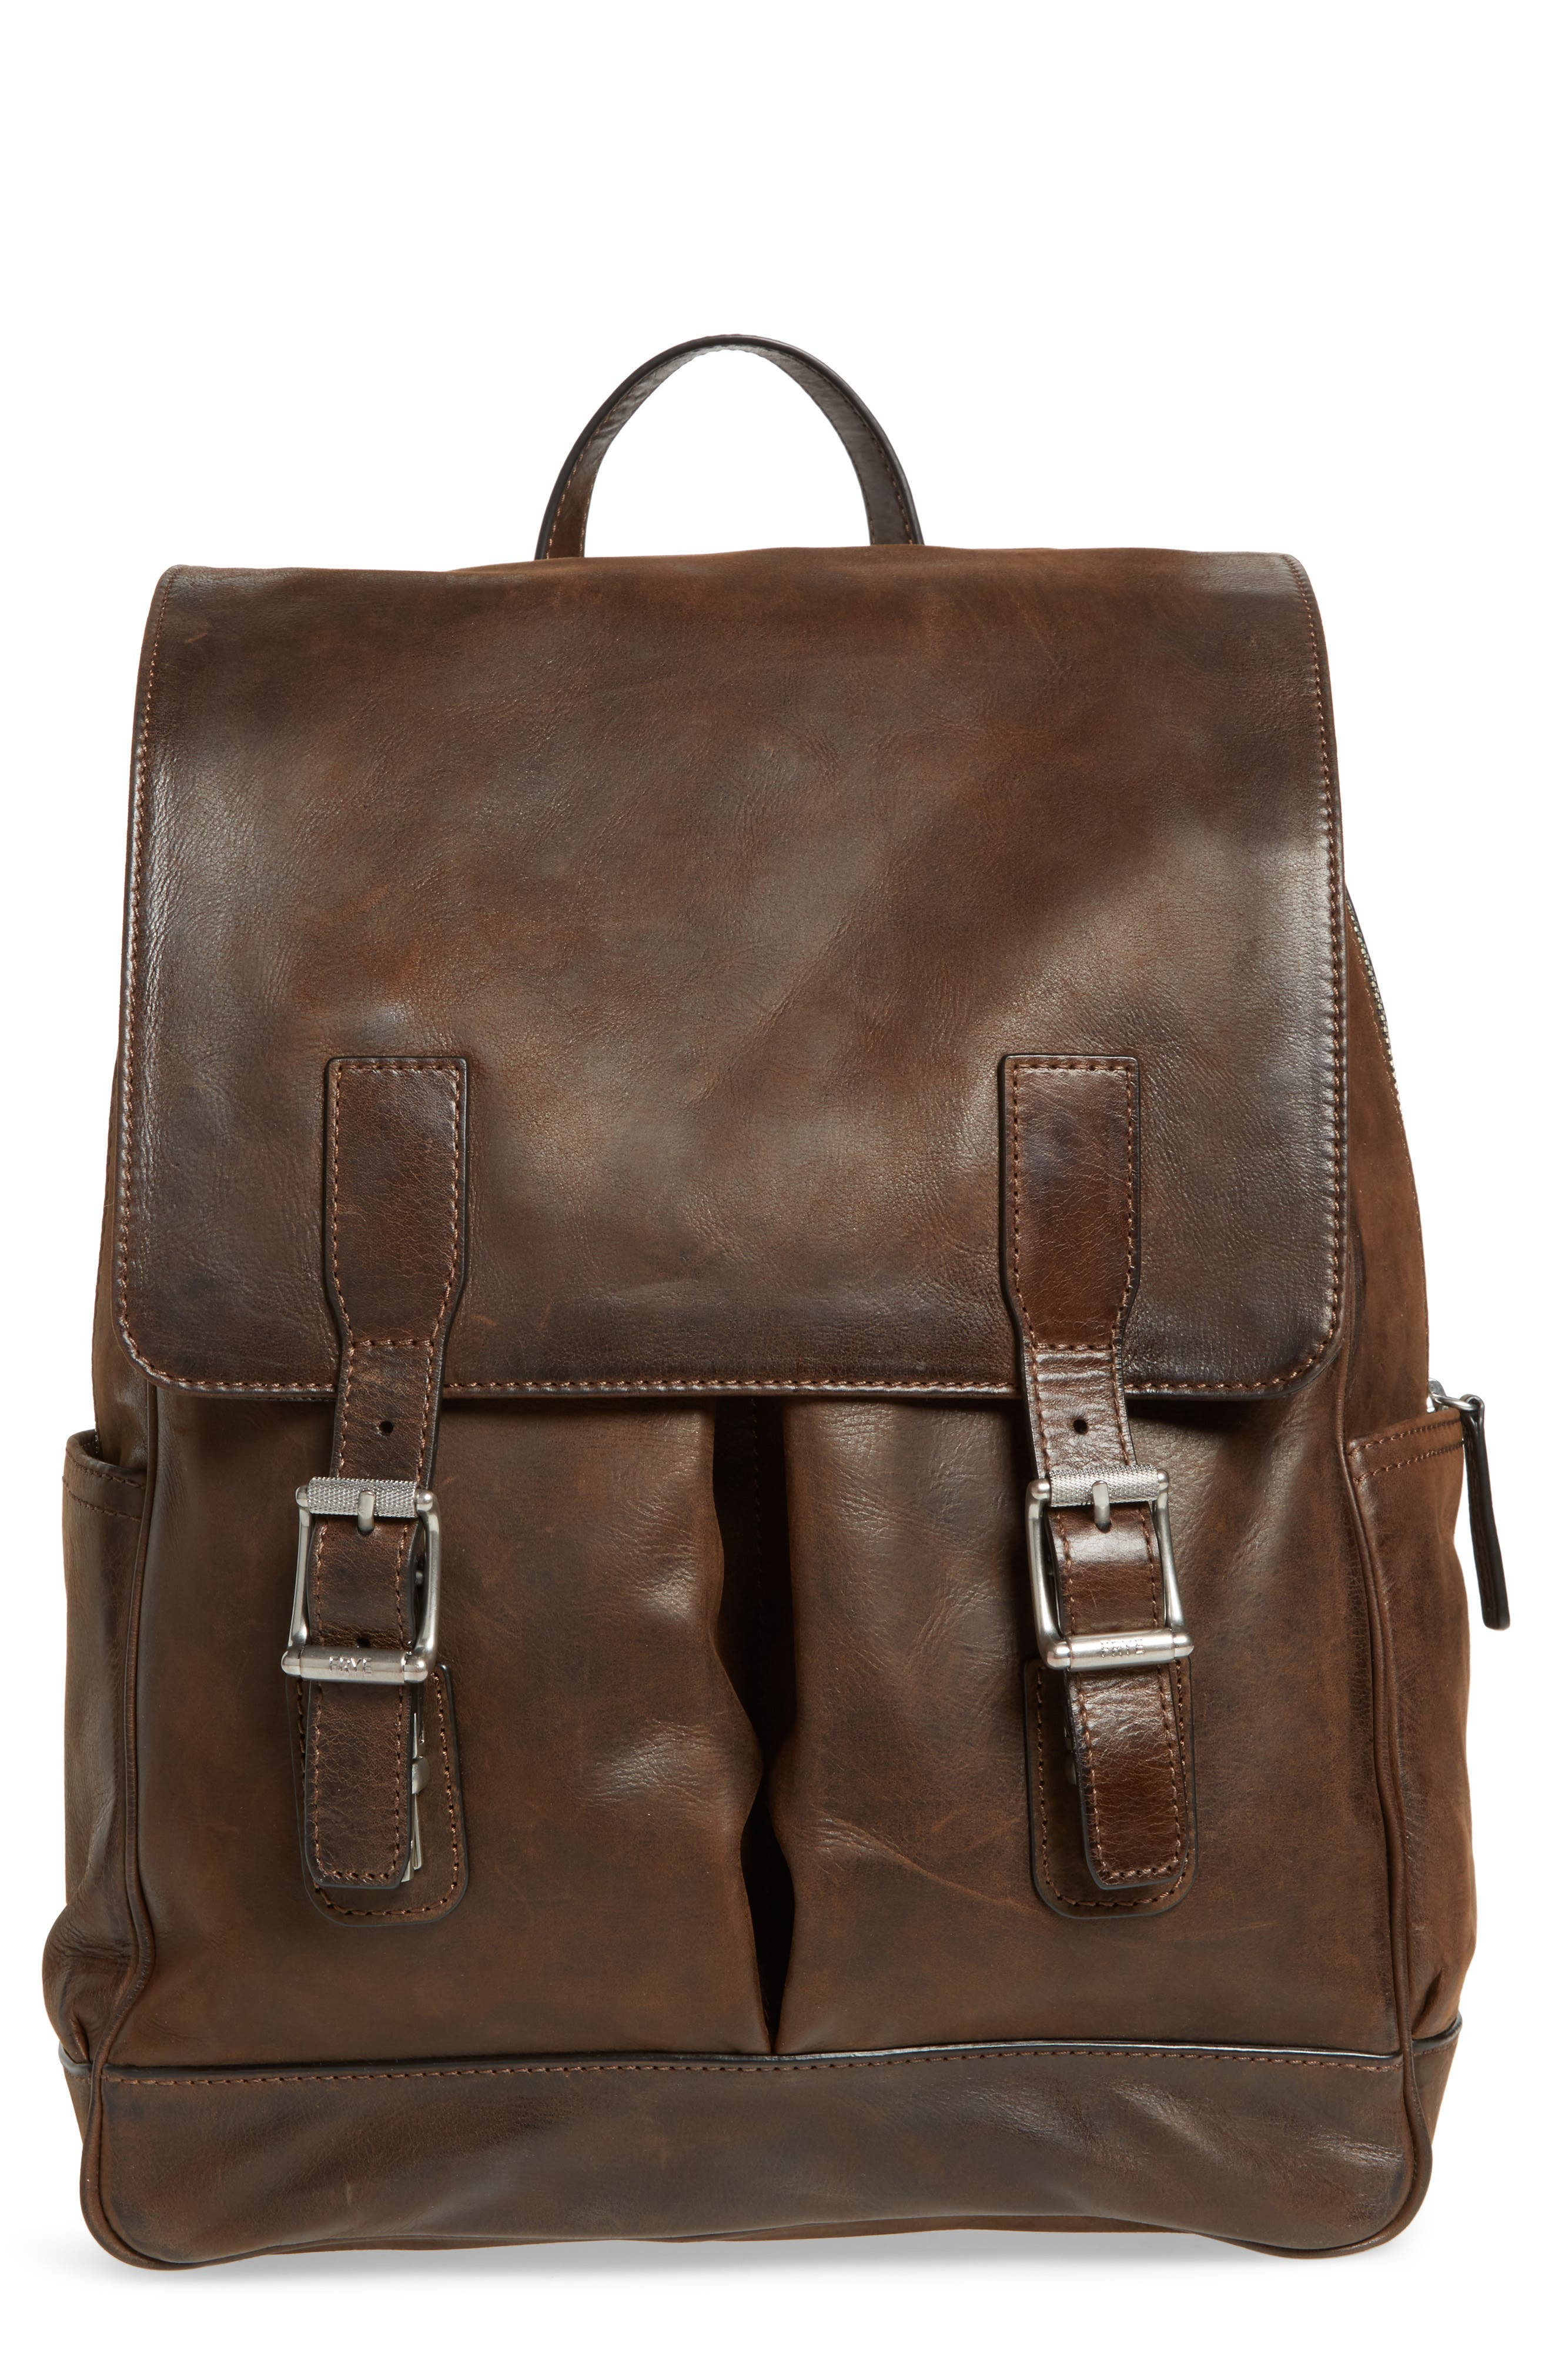 Oliver Leather Backpack,                             Main thumbnail 1, color,                             Dark Brown